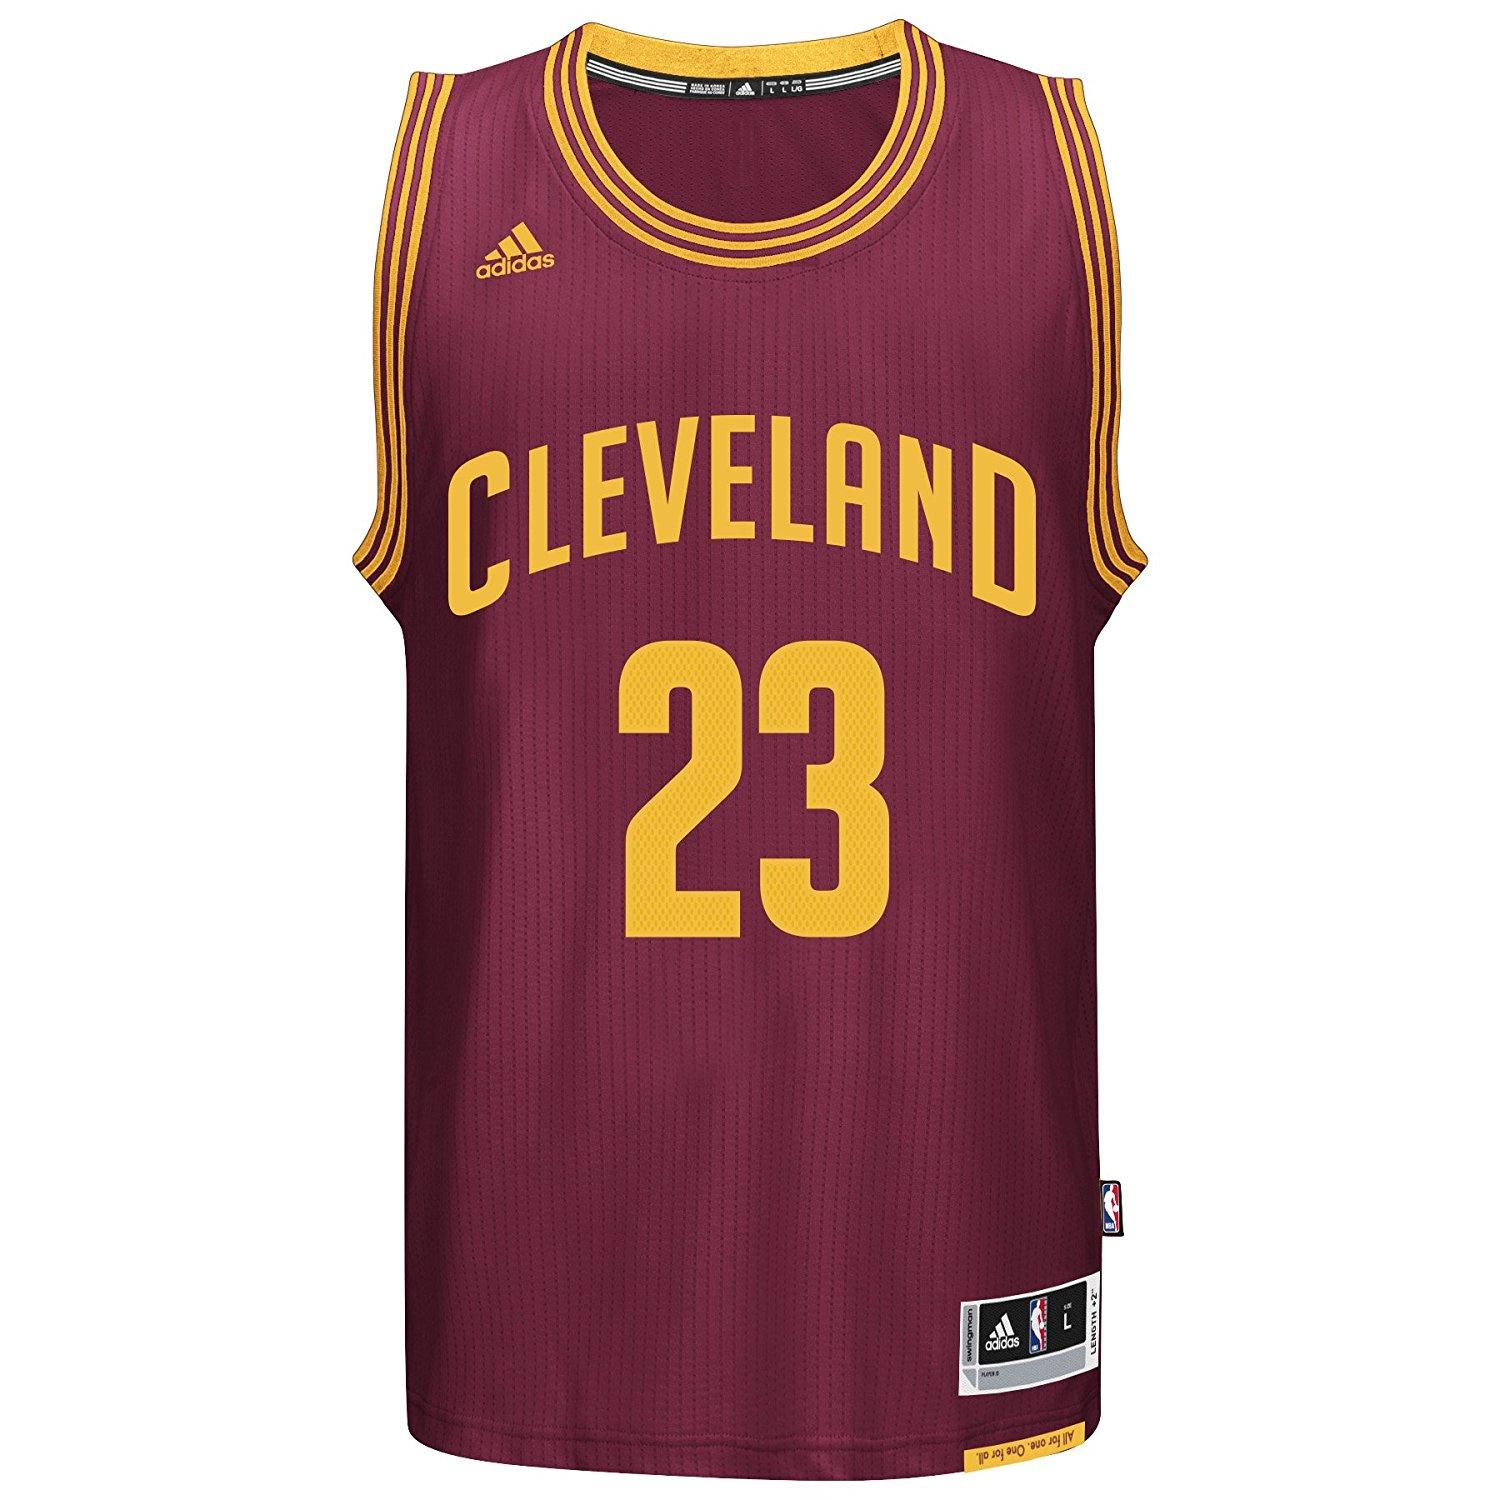 reputable site c1798 dad8f Offical Men's NBA Cleveland Cavaliers Black Basketball Jersey LeBron James  #23